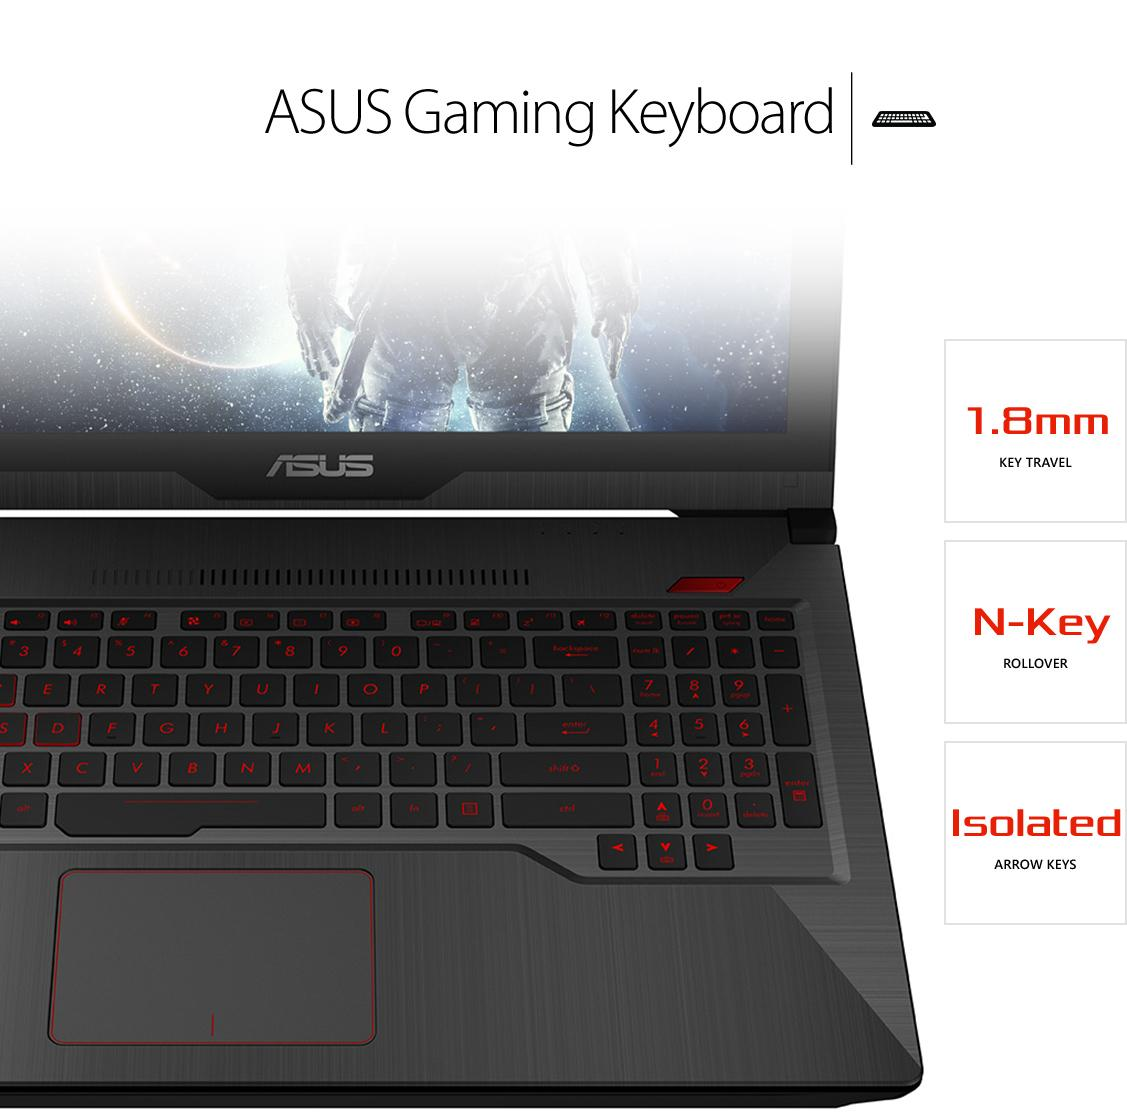 how to turn off webcam light on asus t100